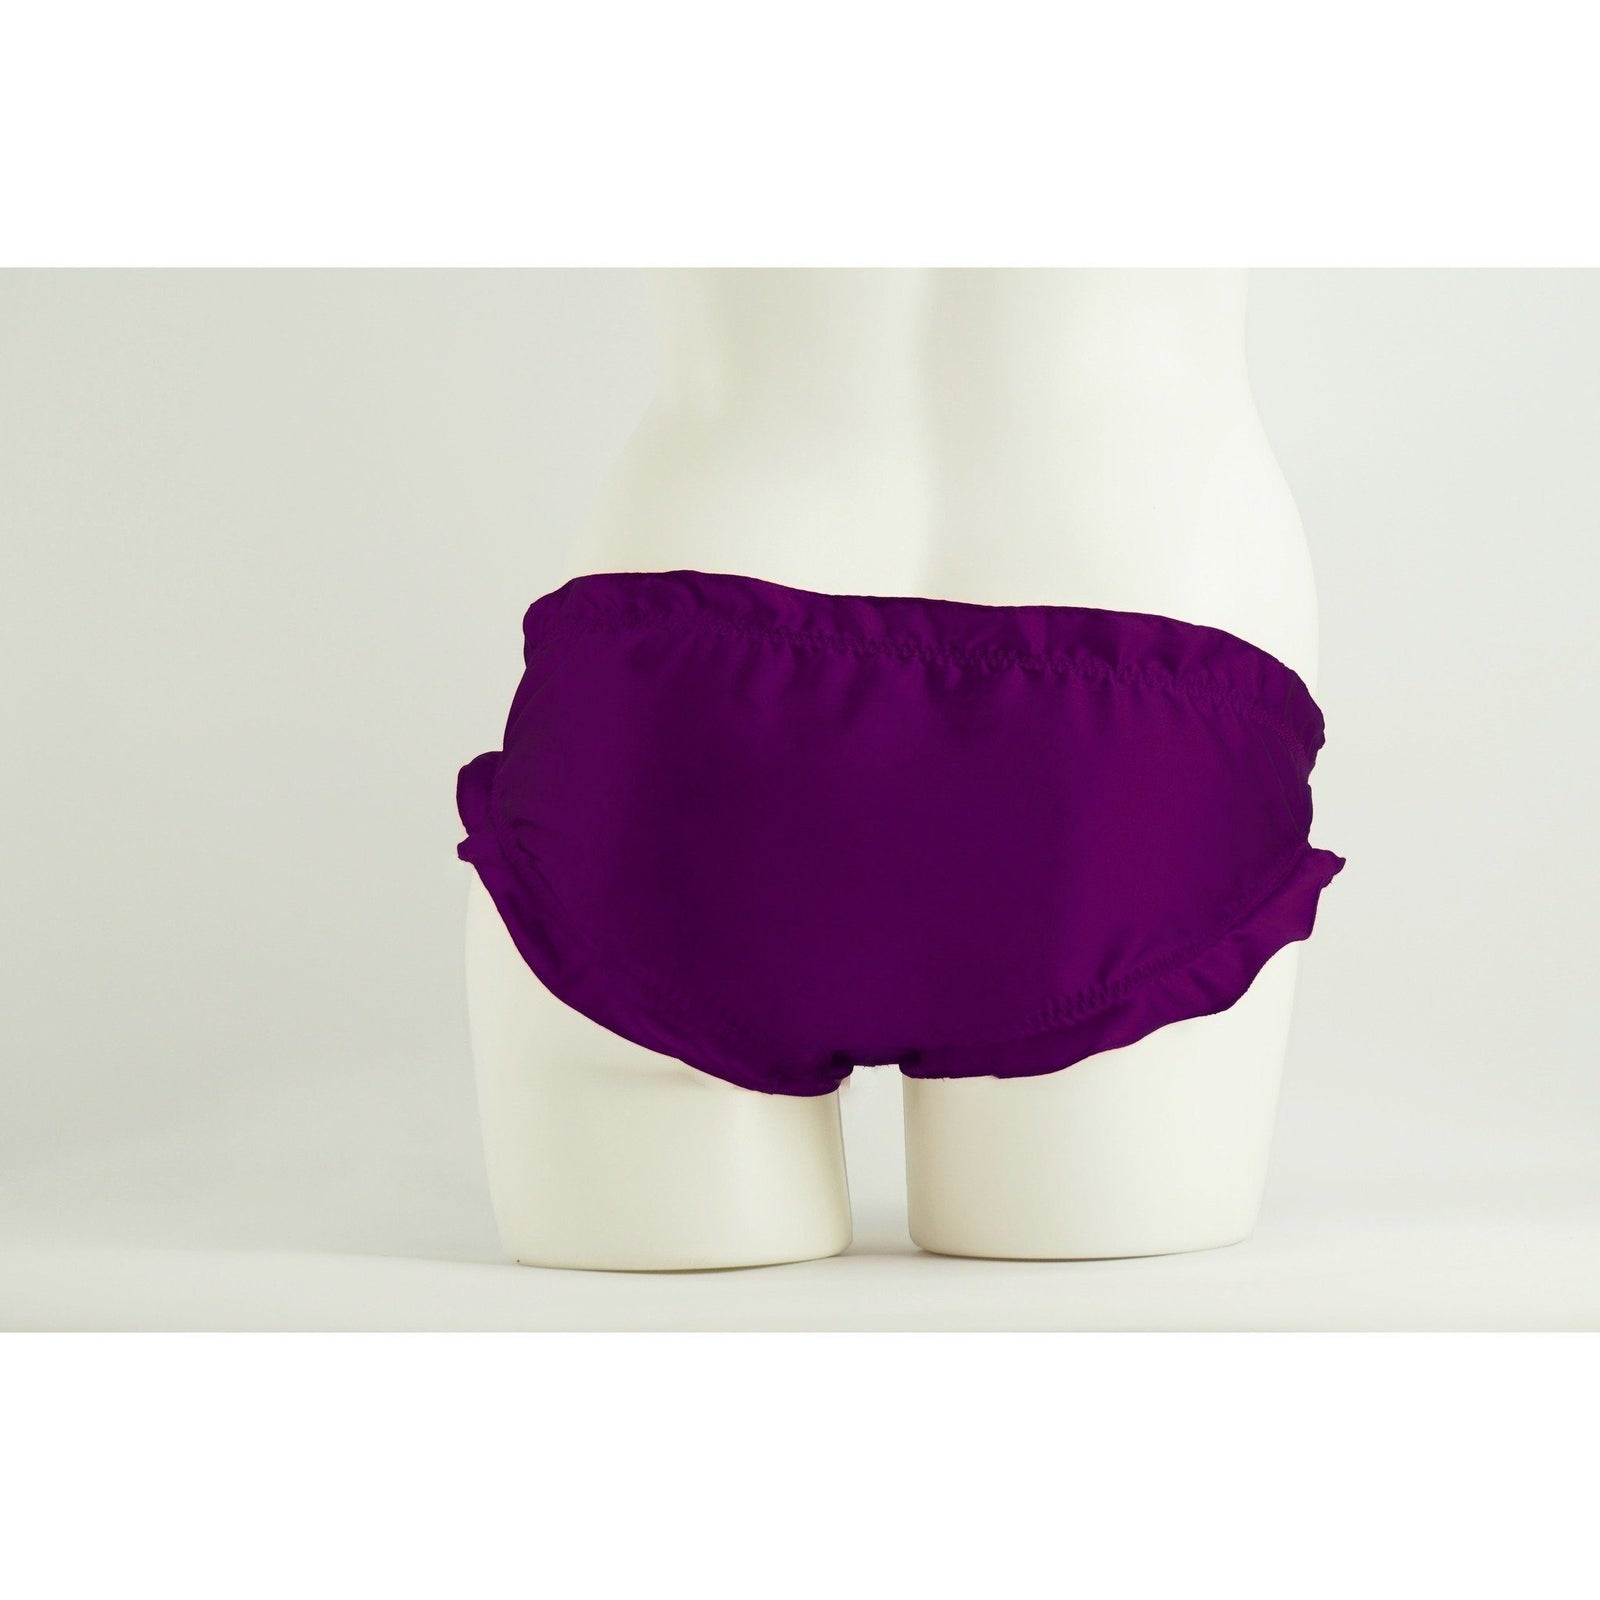 Panties - Bianca Carine Ruffled Bikini Panties In Majesty